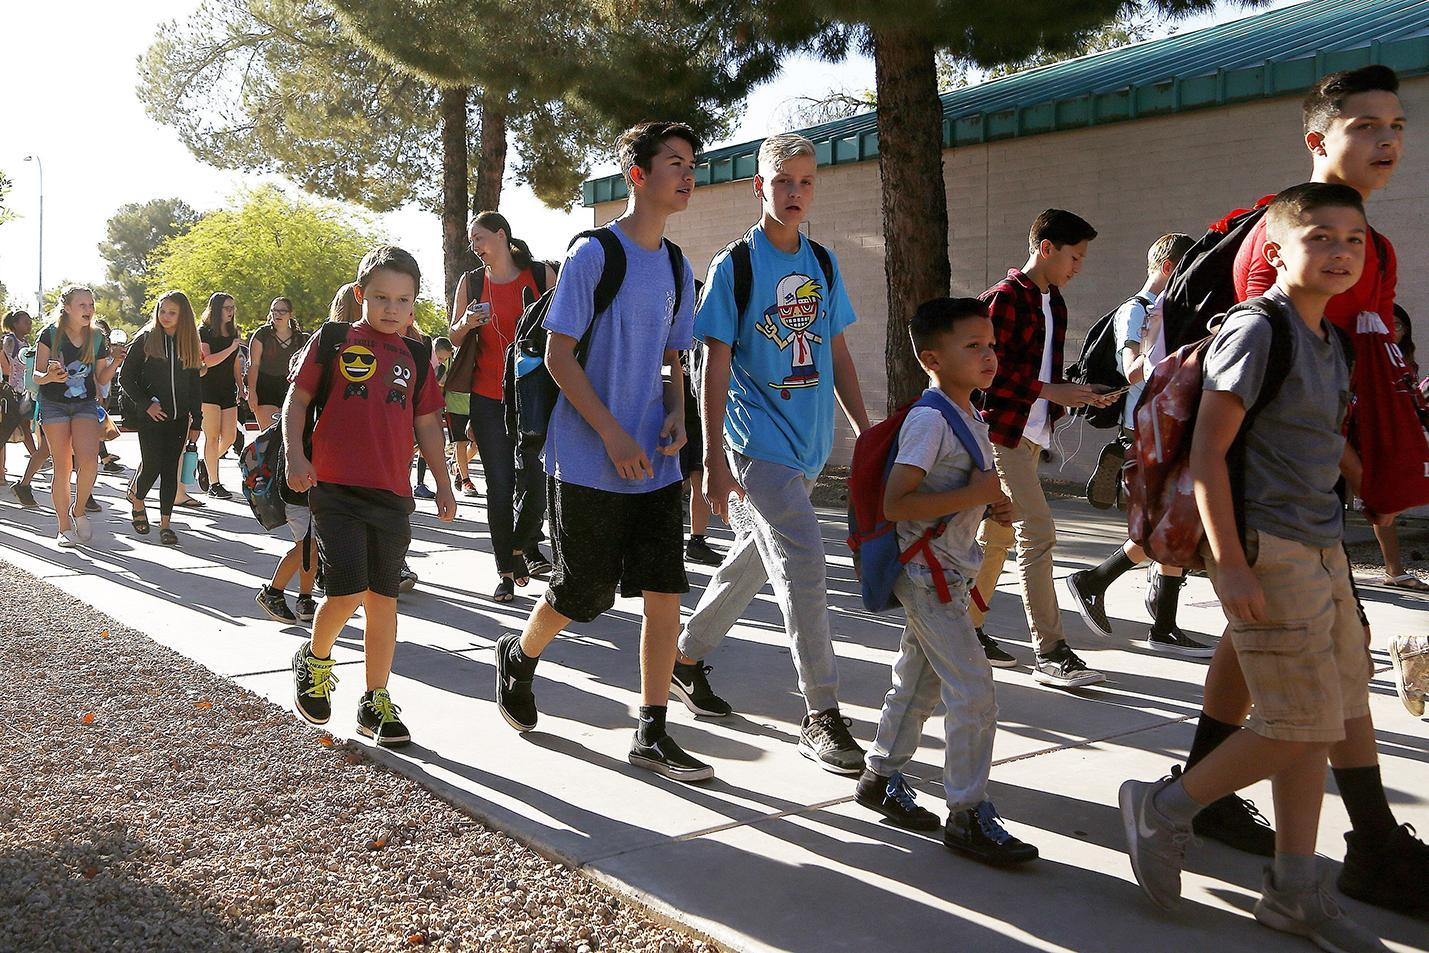 Arizona students returning to school after a teacher strike ended in May